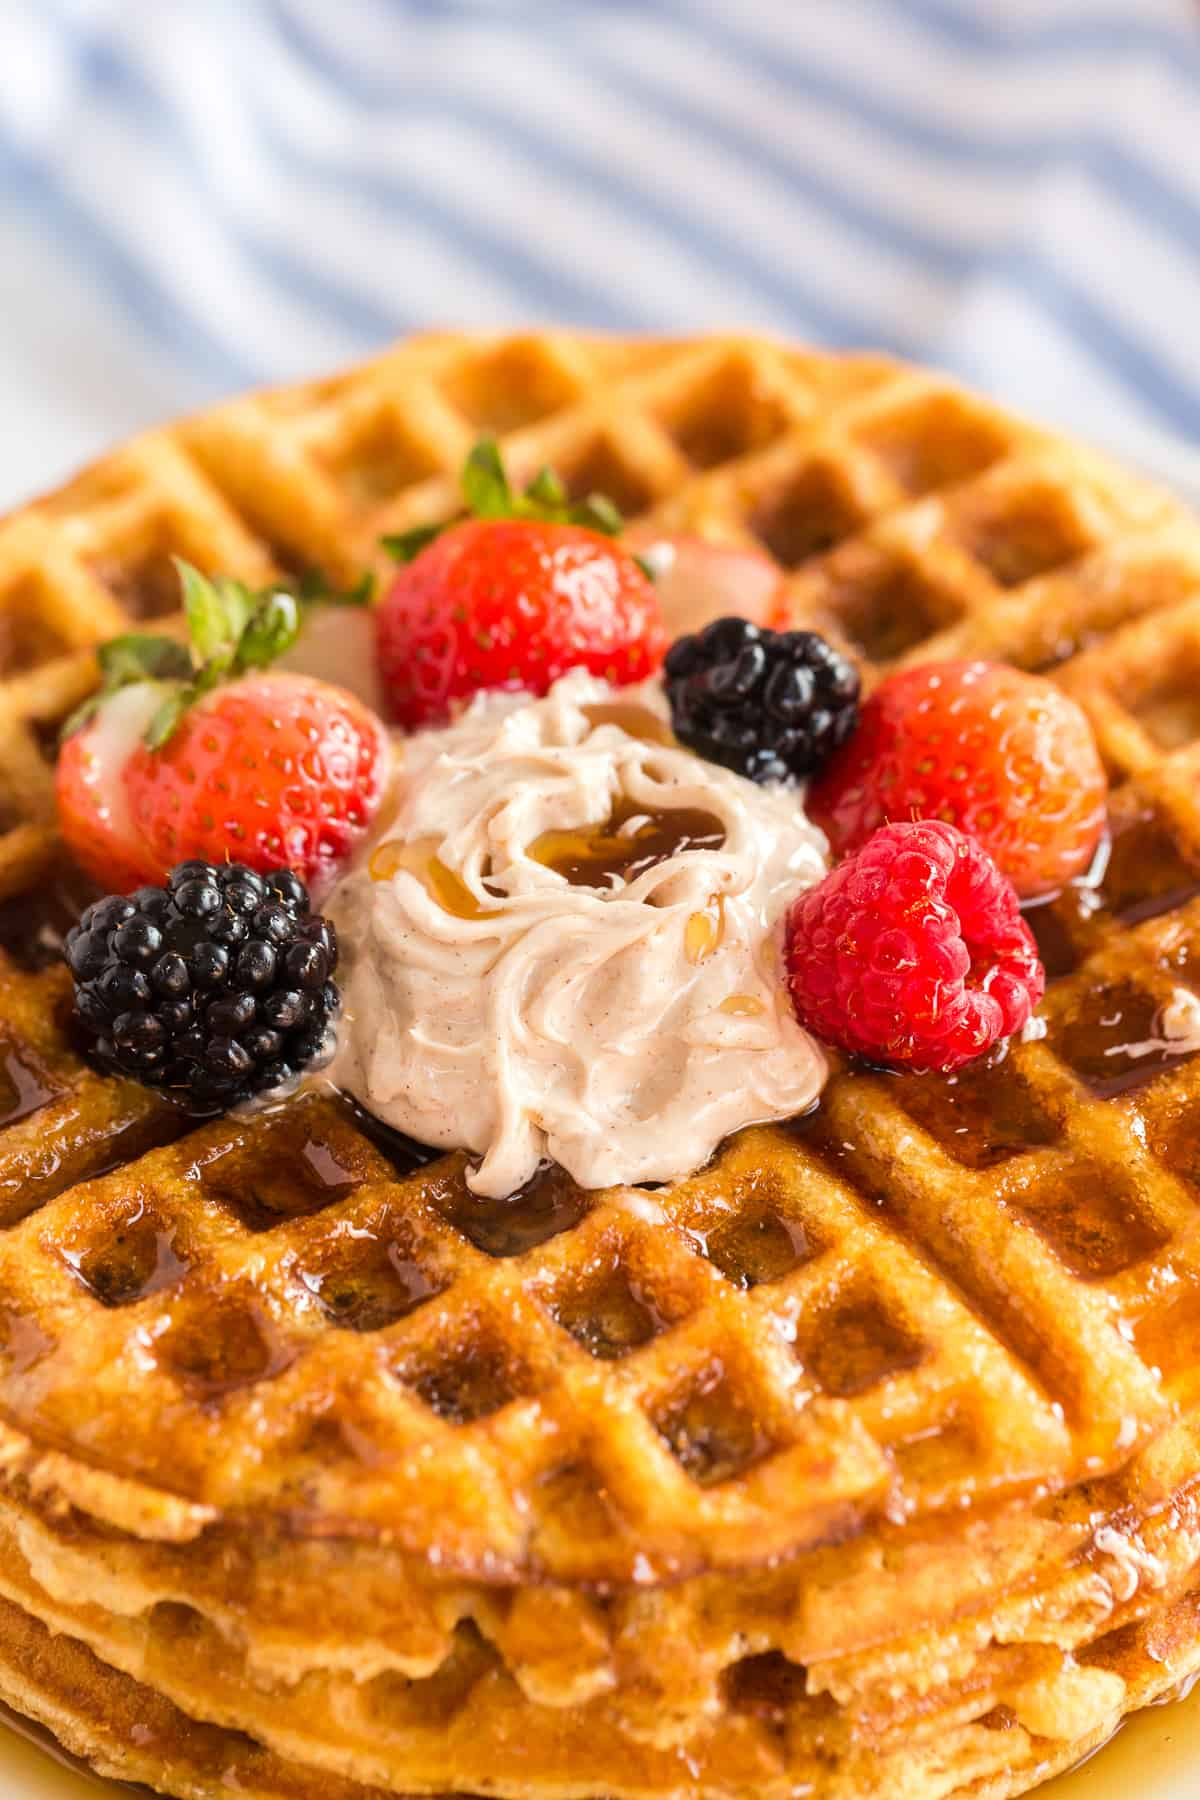 A closeup of a stack of cornbread waffles with berries and butter on top.